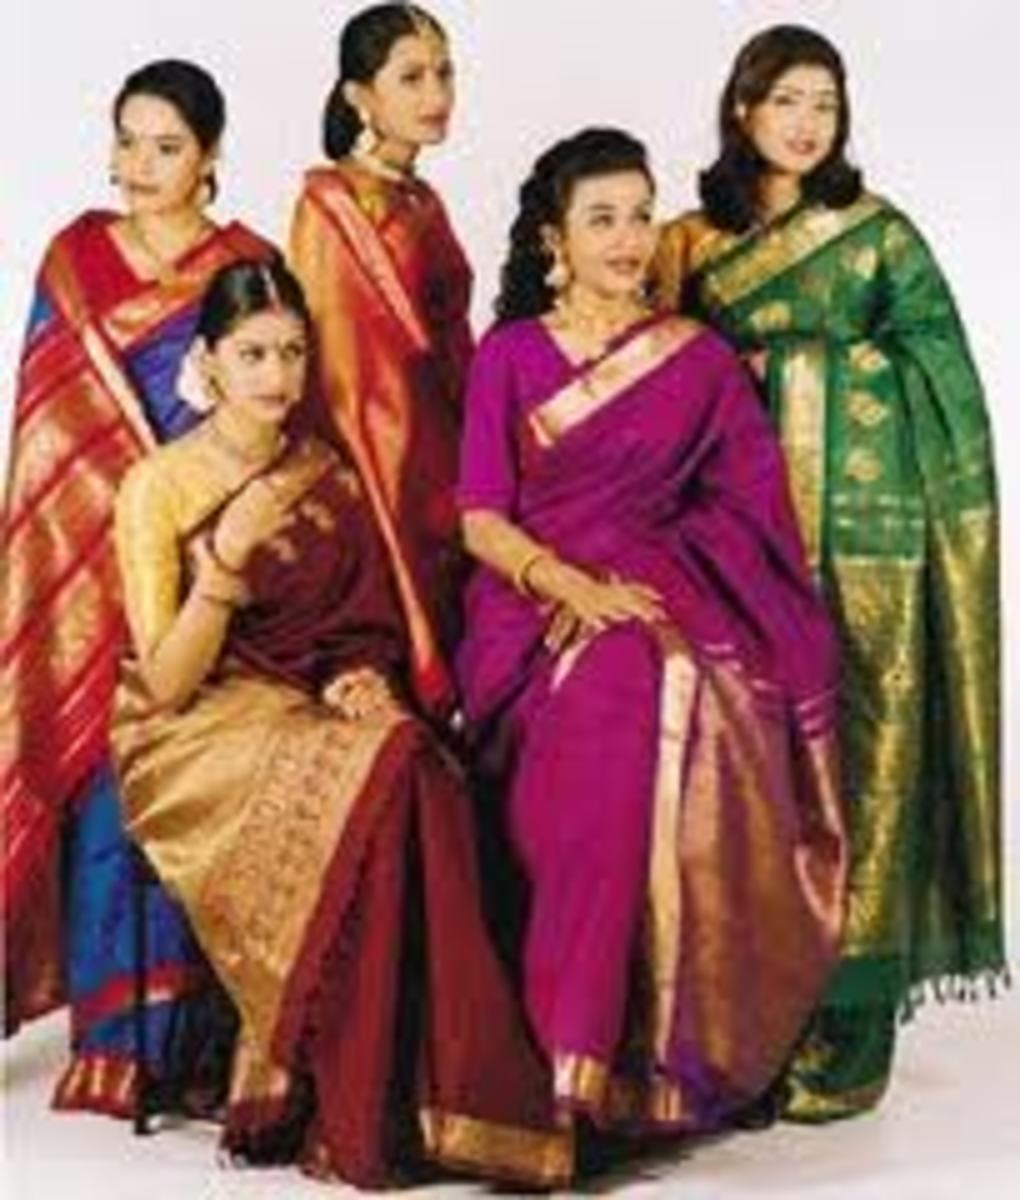 how-to-wear-a-saree-the-traditional-dress-of-indian-women